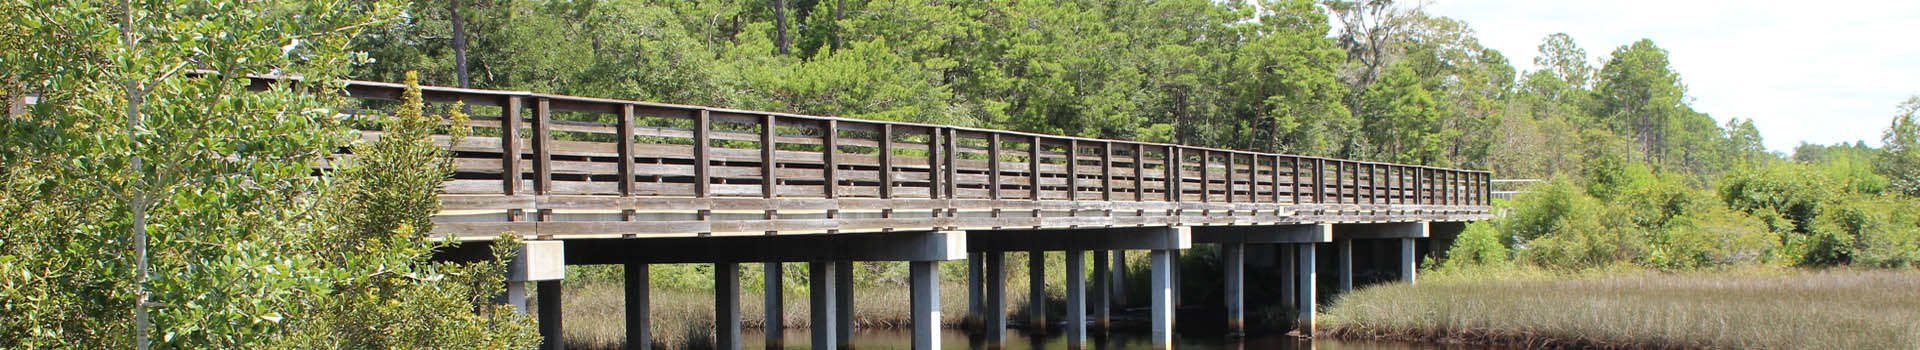 Panhandle_Engineering_Bridge_header